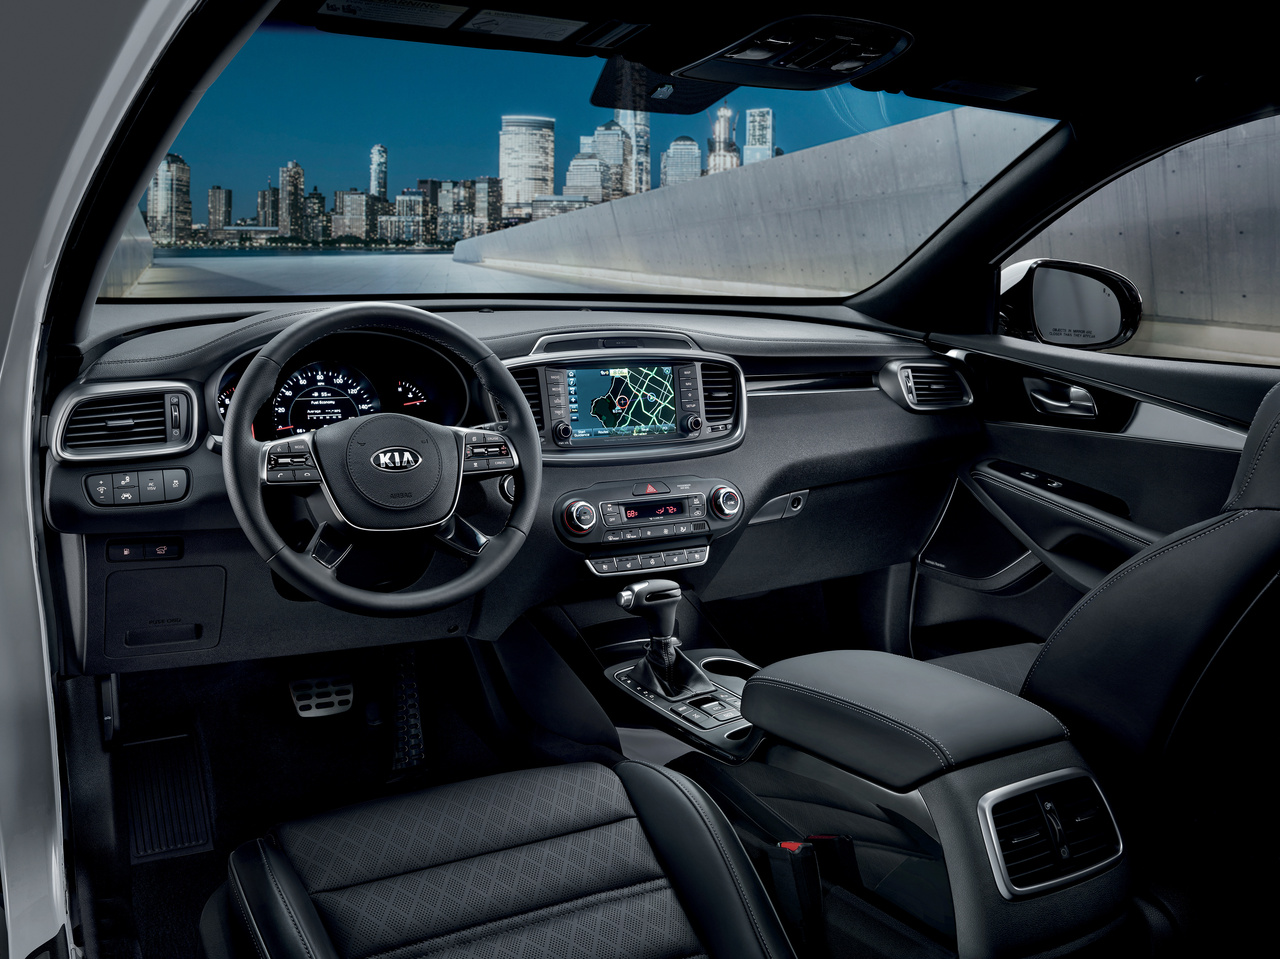 Kia Sorento interior features